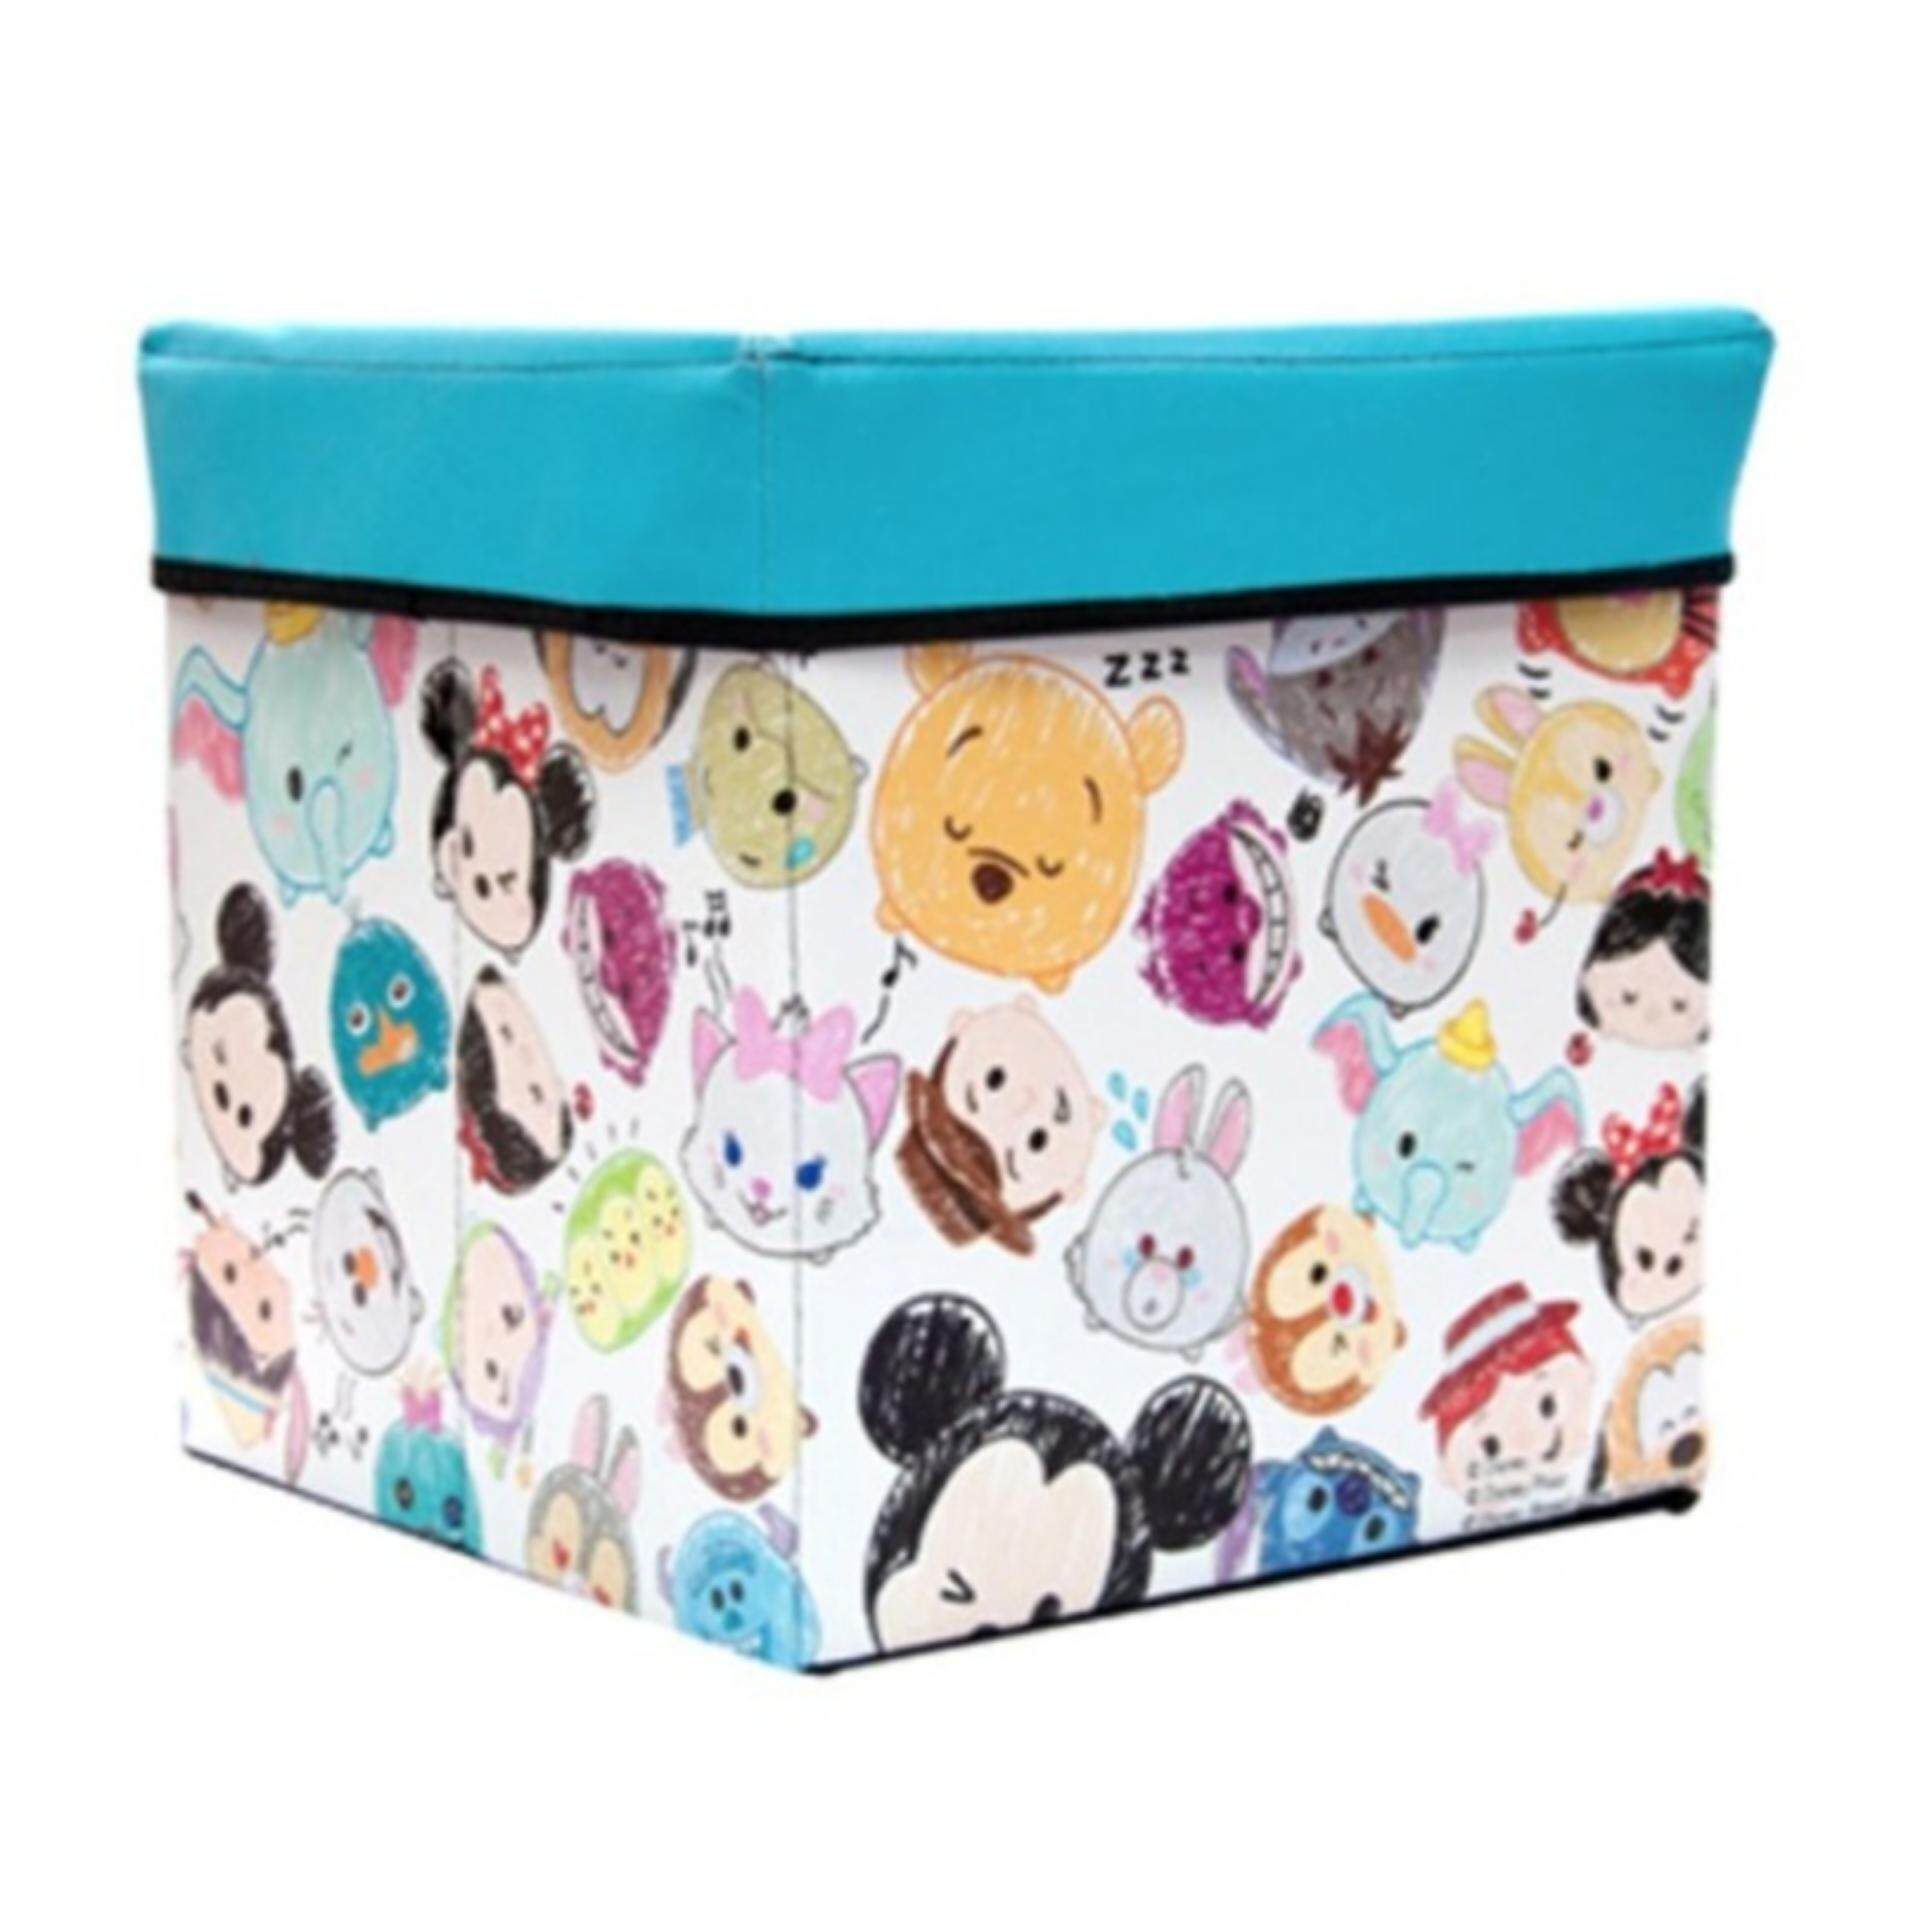 Disney Tsum Tsum Storage Box - Blue Colour